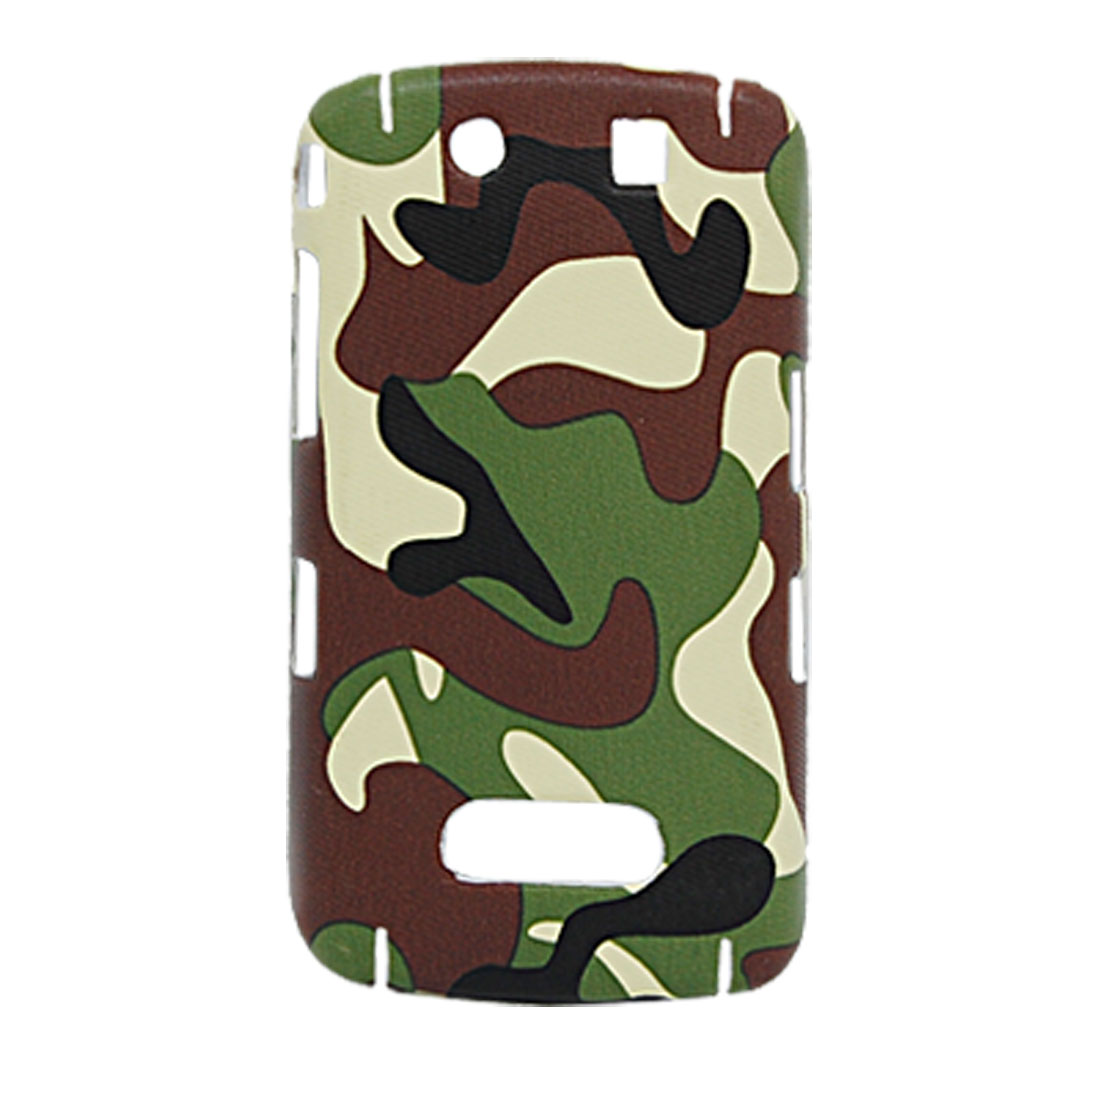 Army Camouflage Back Case Hard Shell Protector for Blackberry 9500